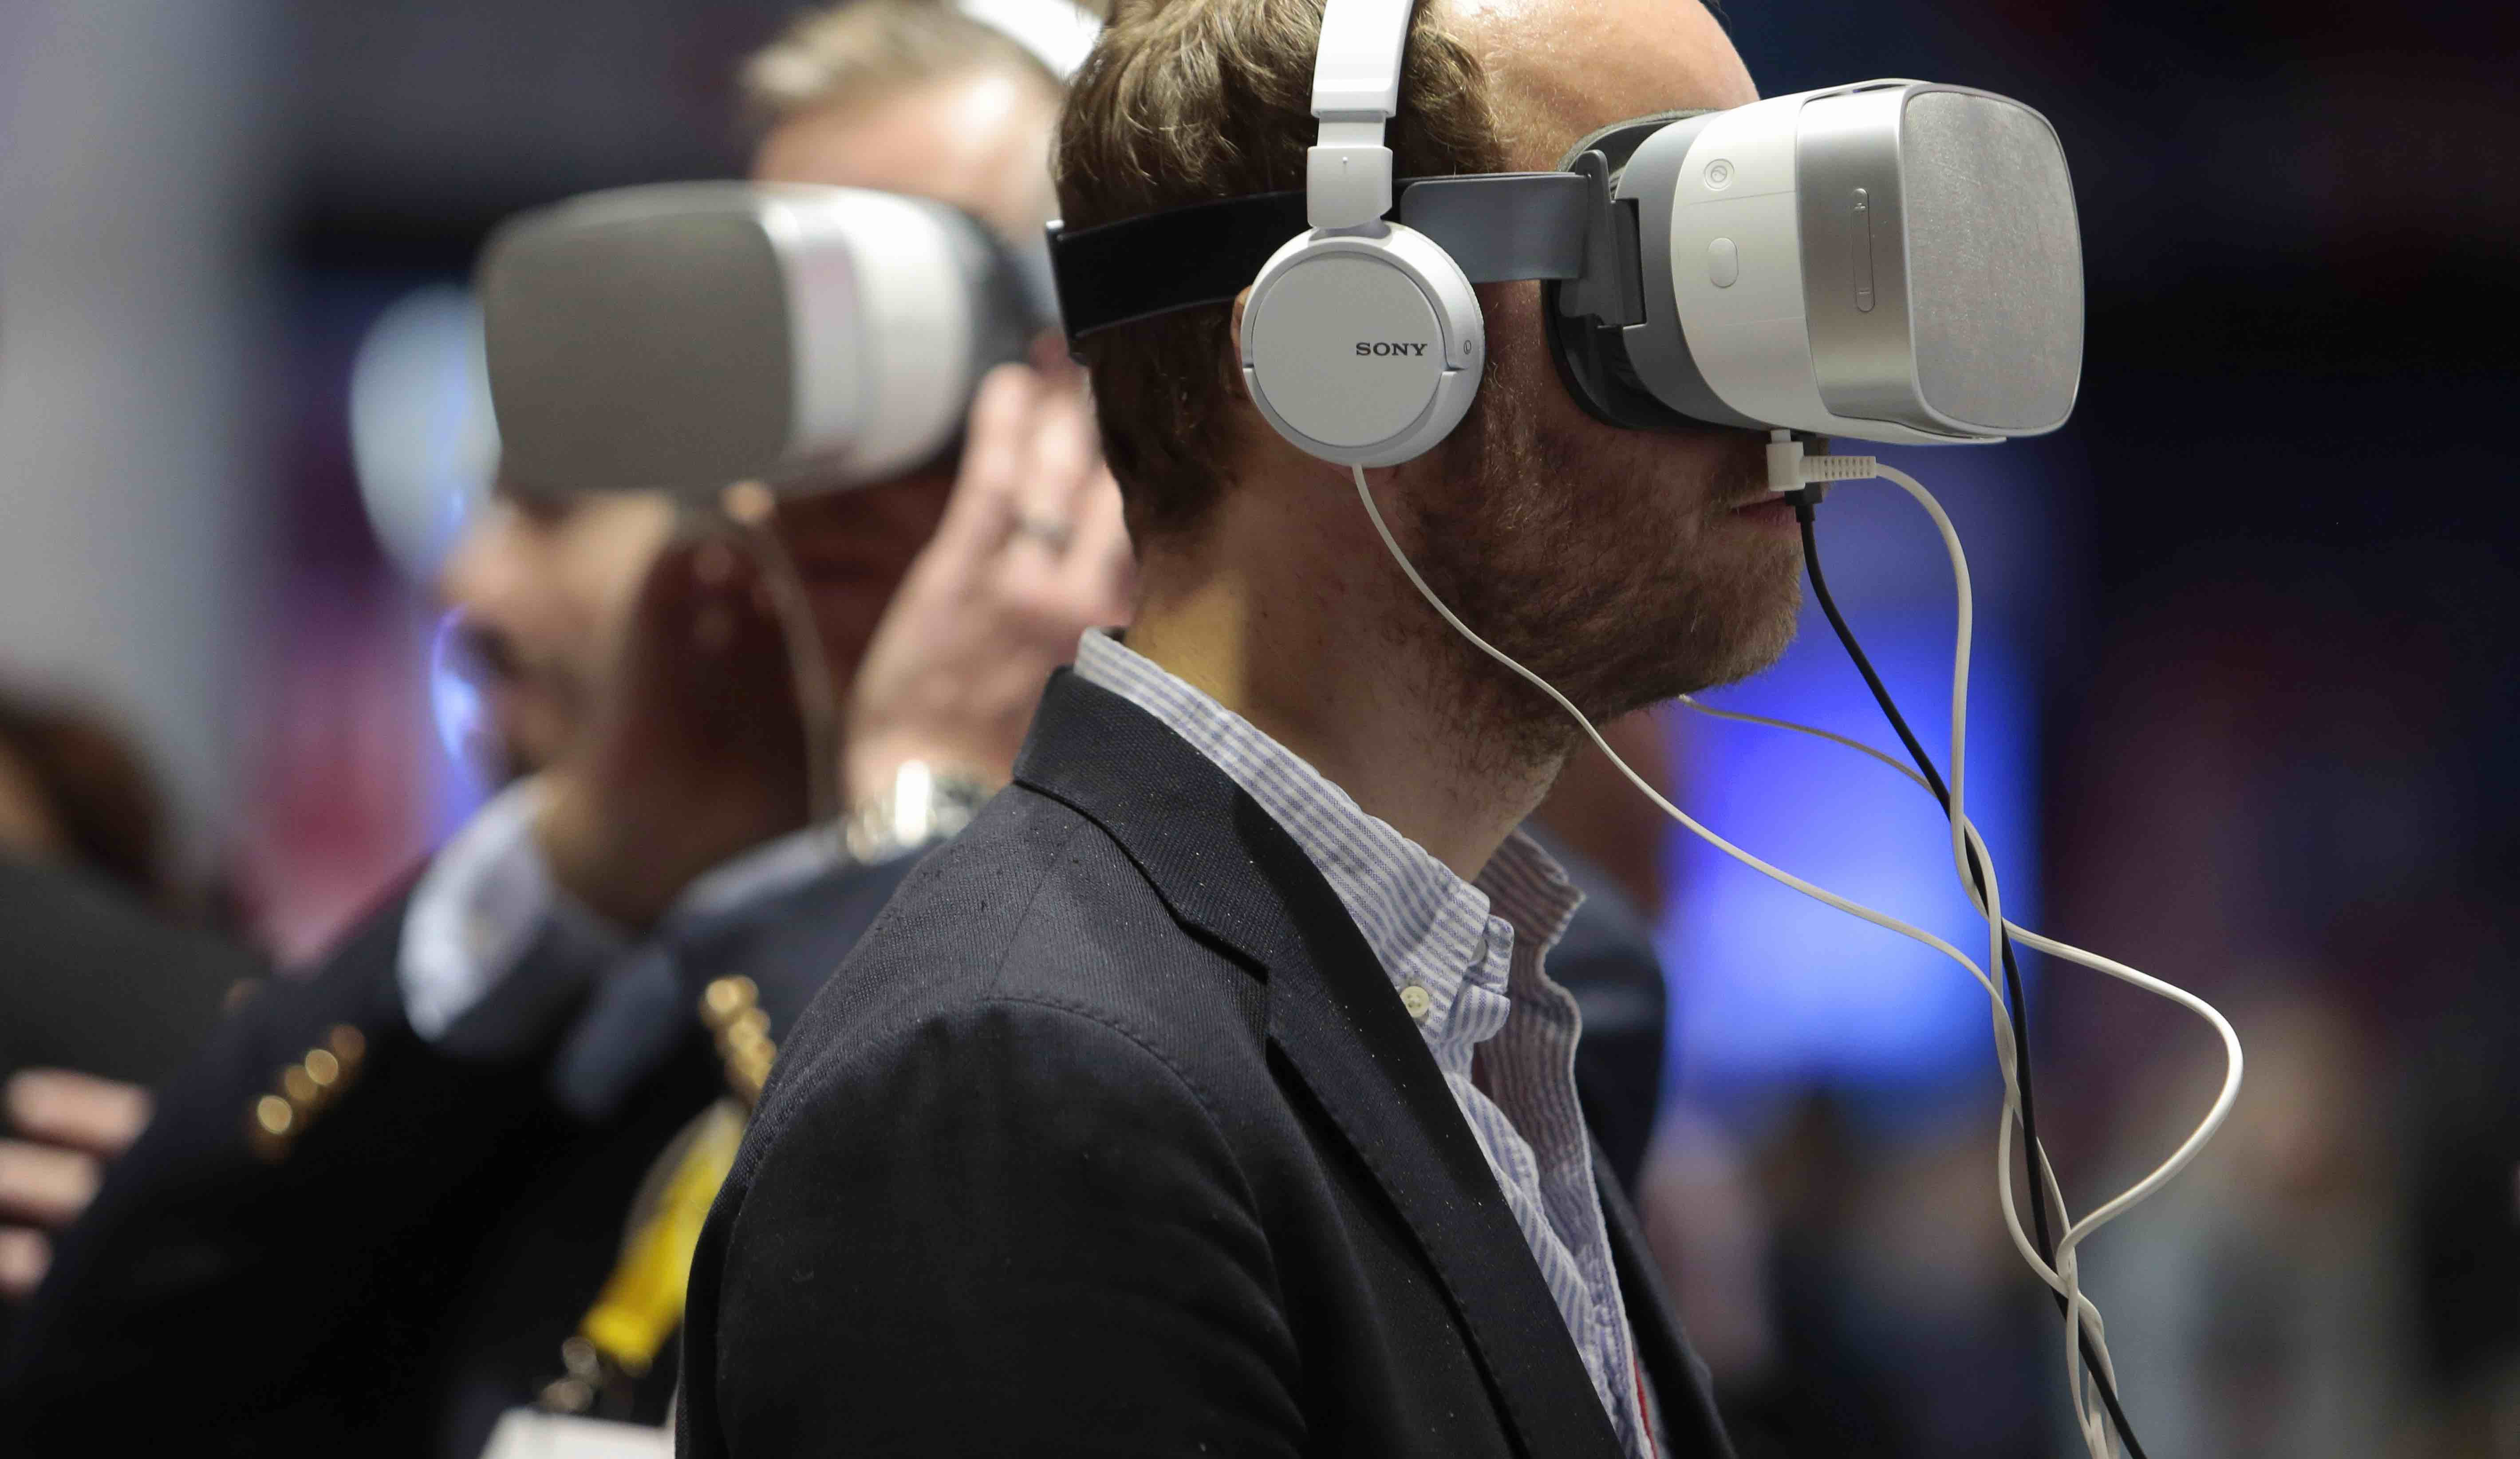 Virtual 5G technology on display at the Mobile World Congress, Barcelona, in February (Photo: Miquel Benitez/Getty)